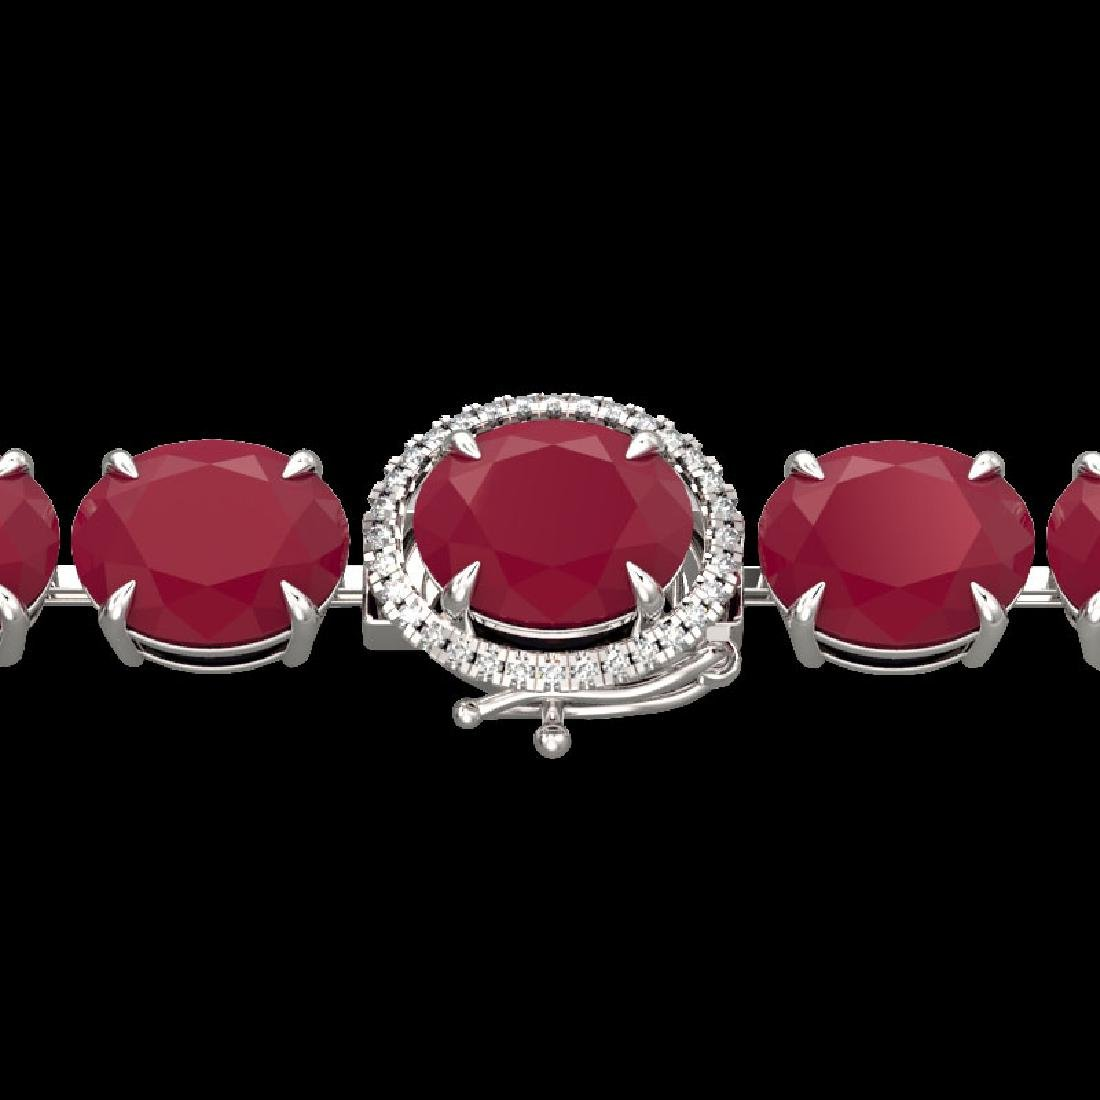 75 CTW Ruby & Micro Pave VS/SI Diamond Halo Bracelet